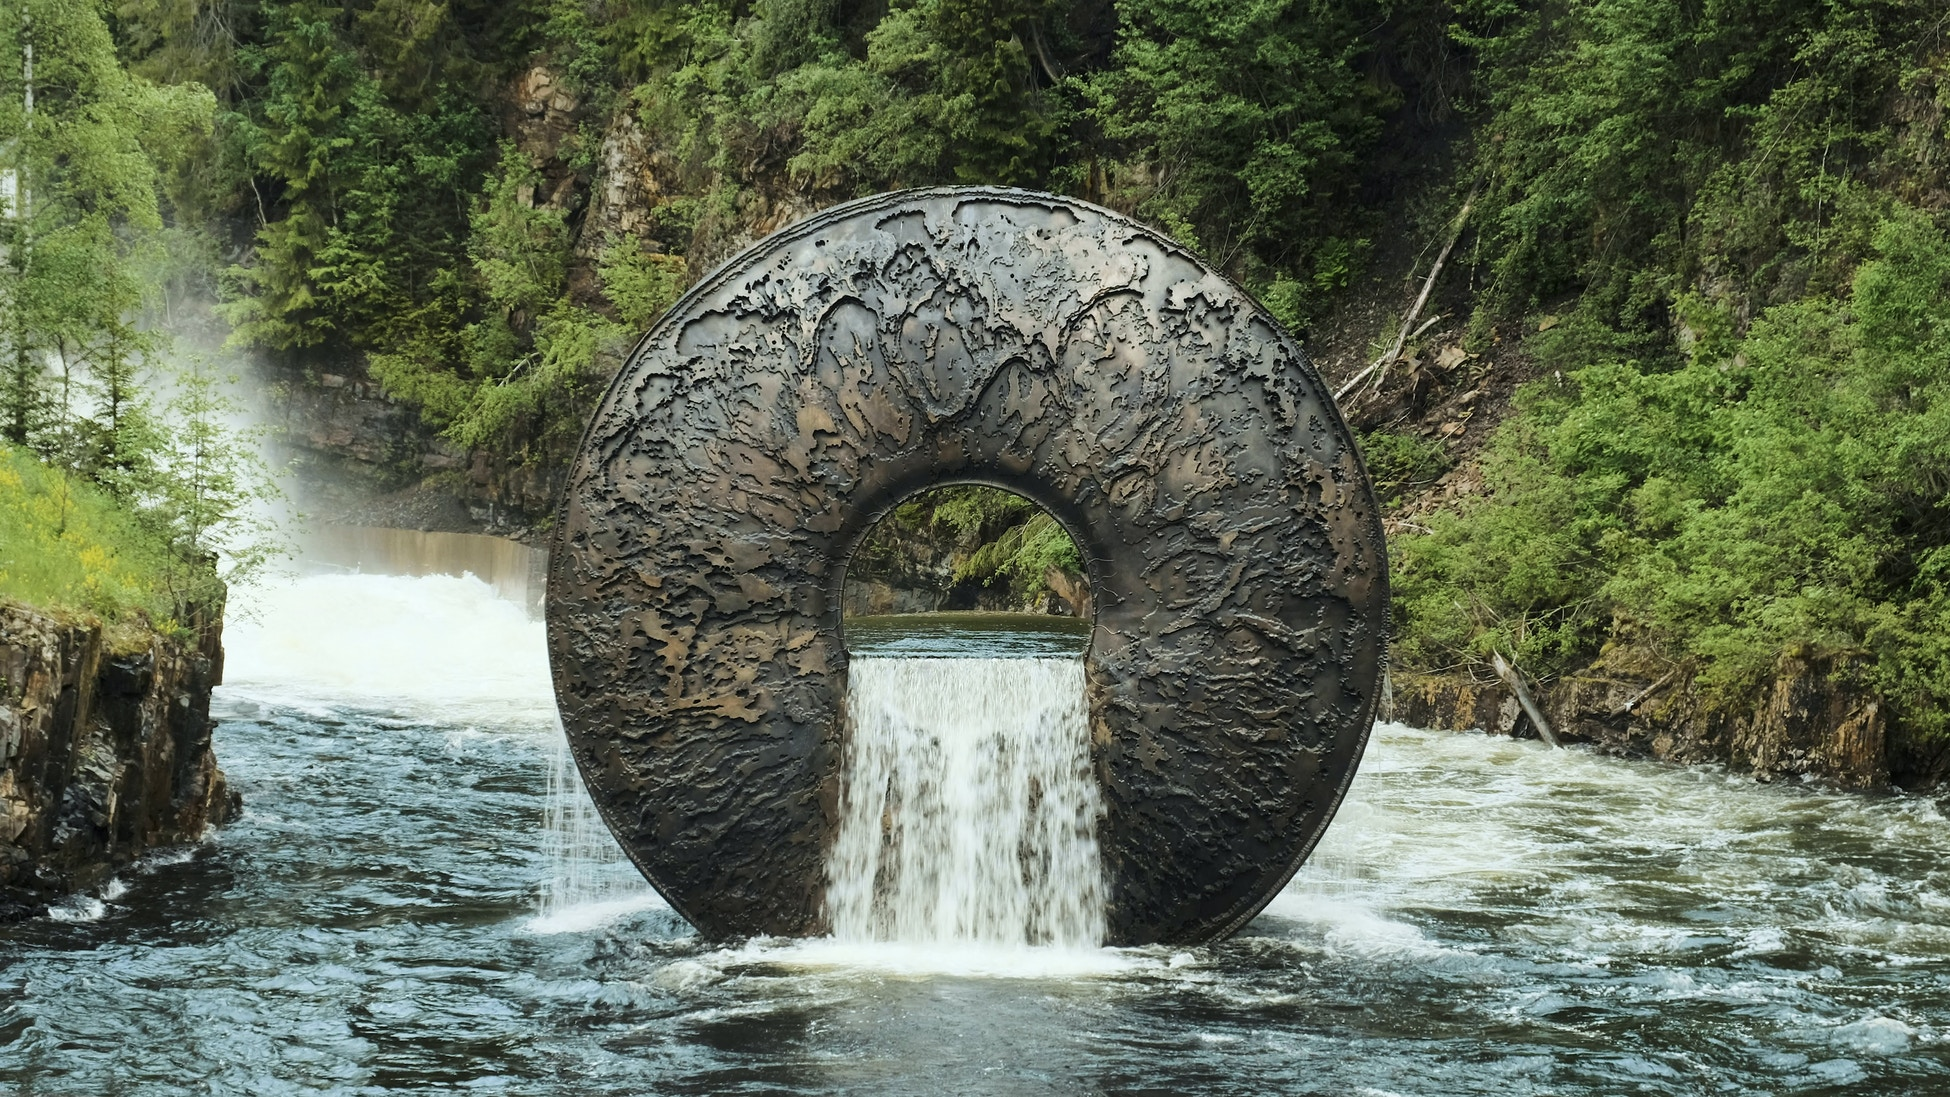 Sculpture, shape of an eye, placed in the river